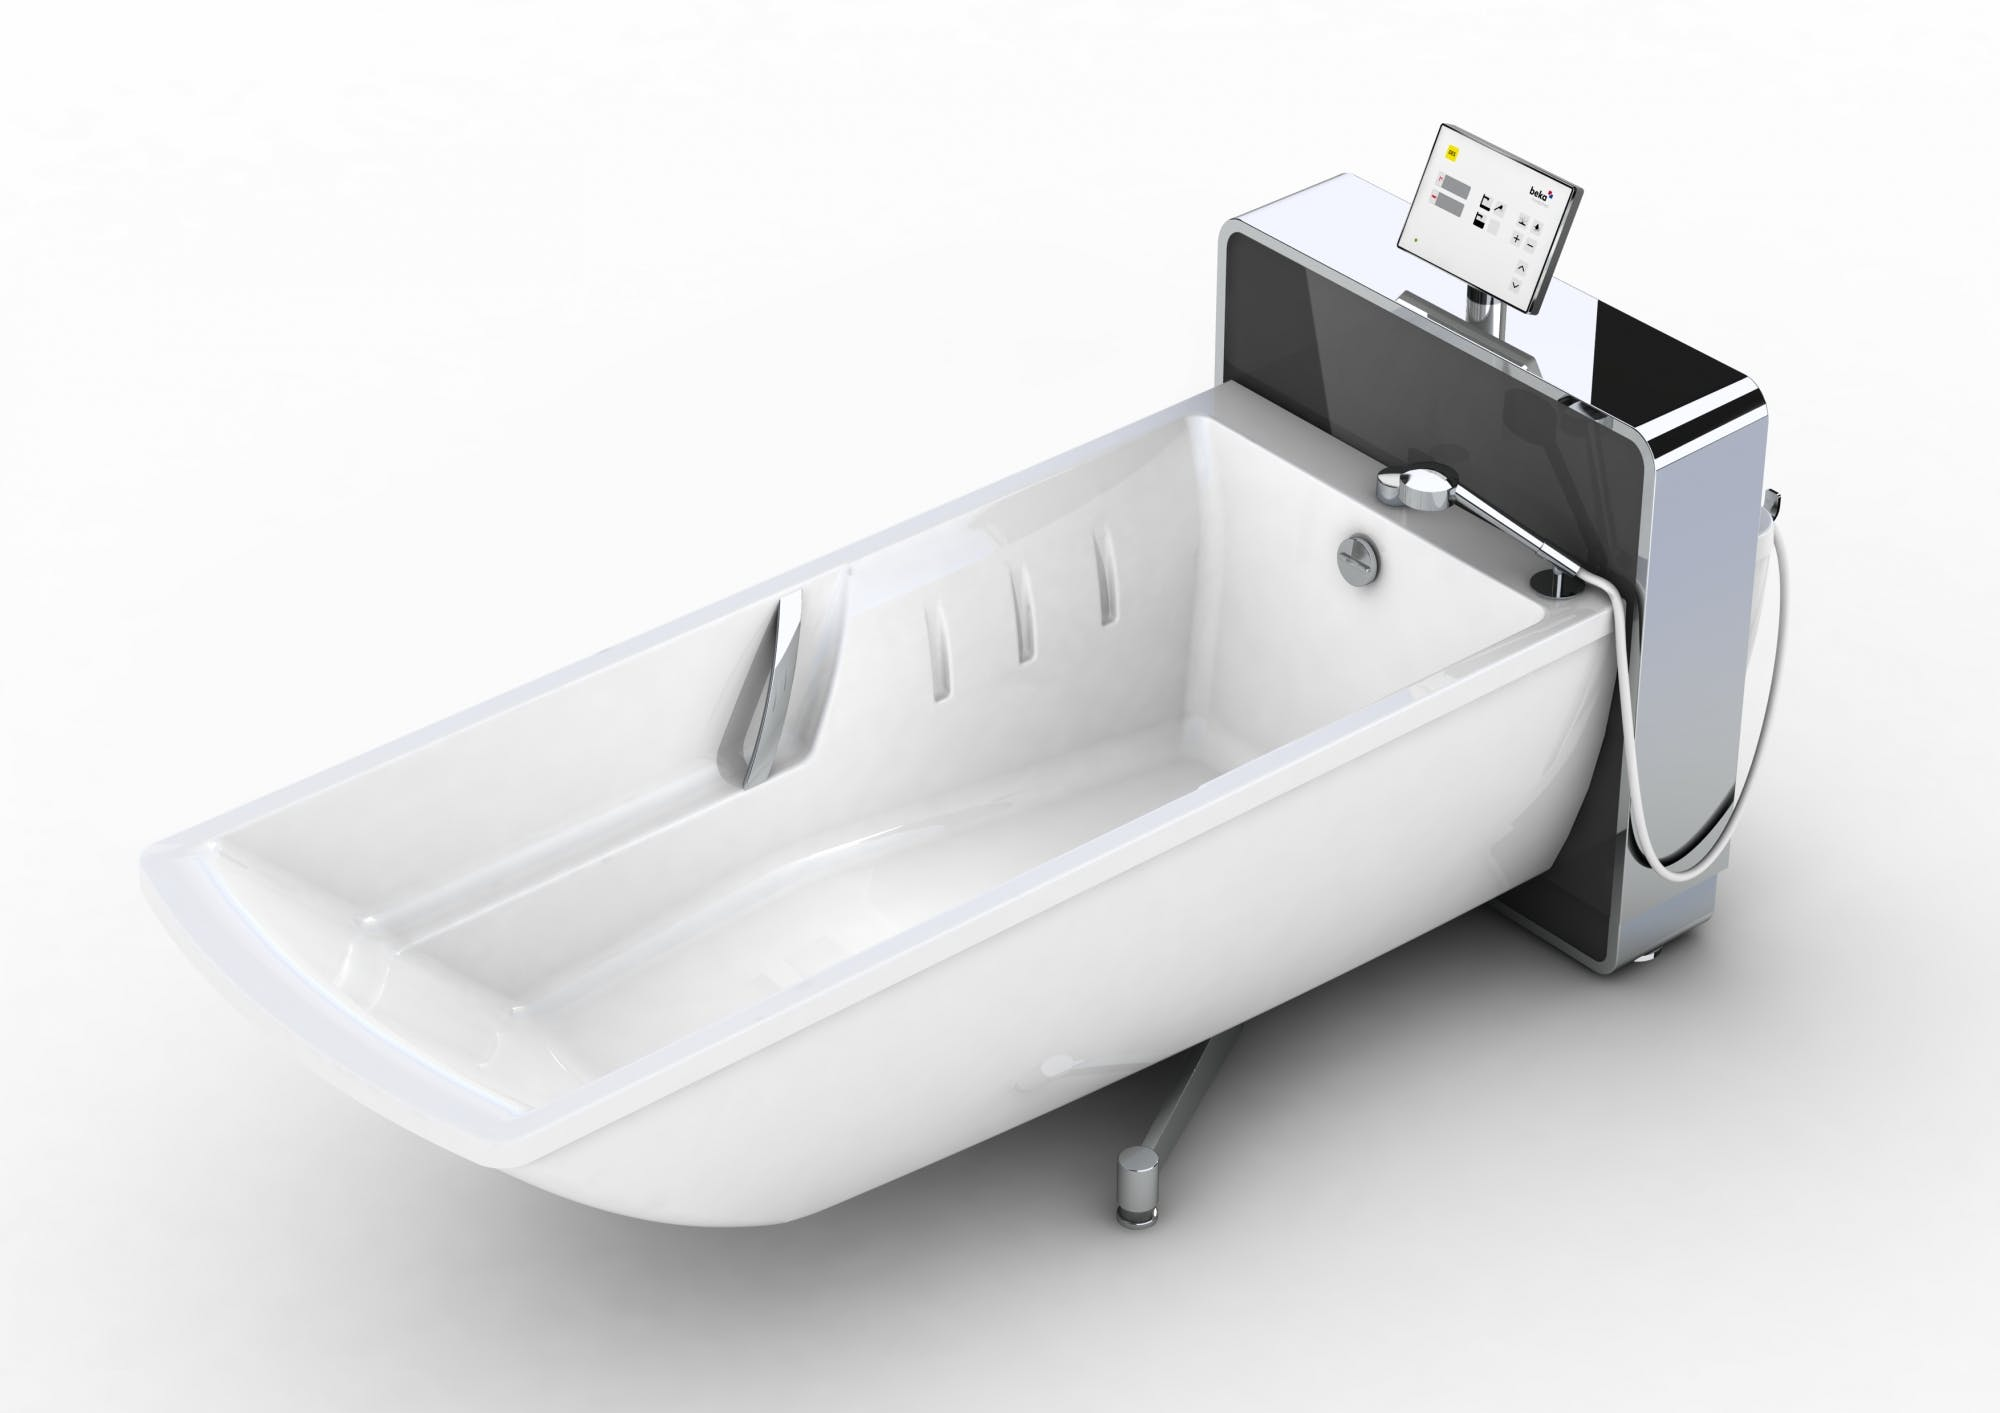 Americans with disabilities act ada coastal bath and kitchen - Tilt Bathshelp Advice Bespoke Bathroom Solutions For Disabled Users